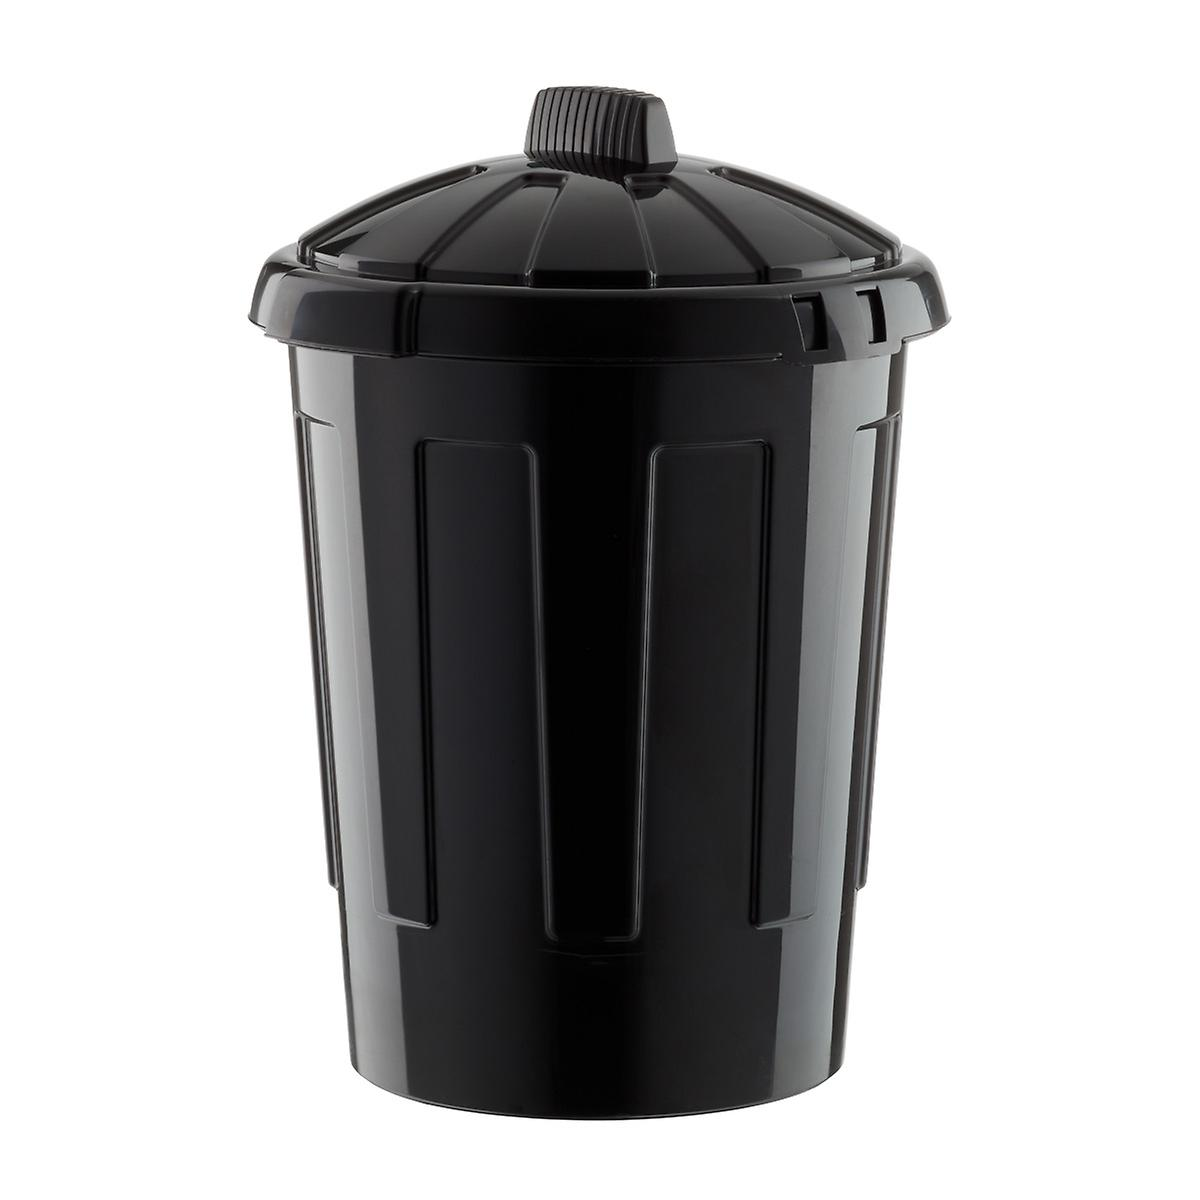 Simplehuman 13l 50g Trash Can Review